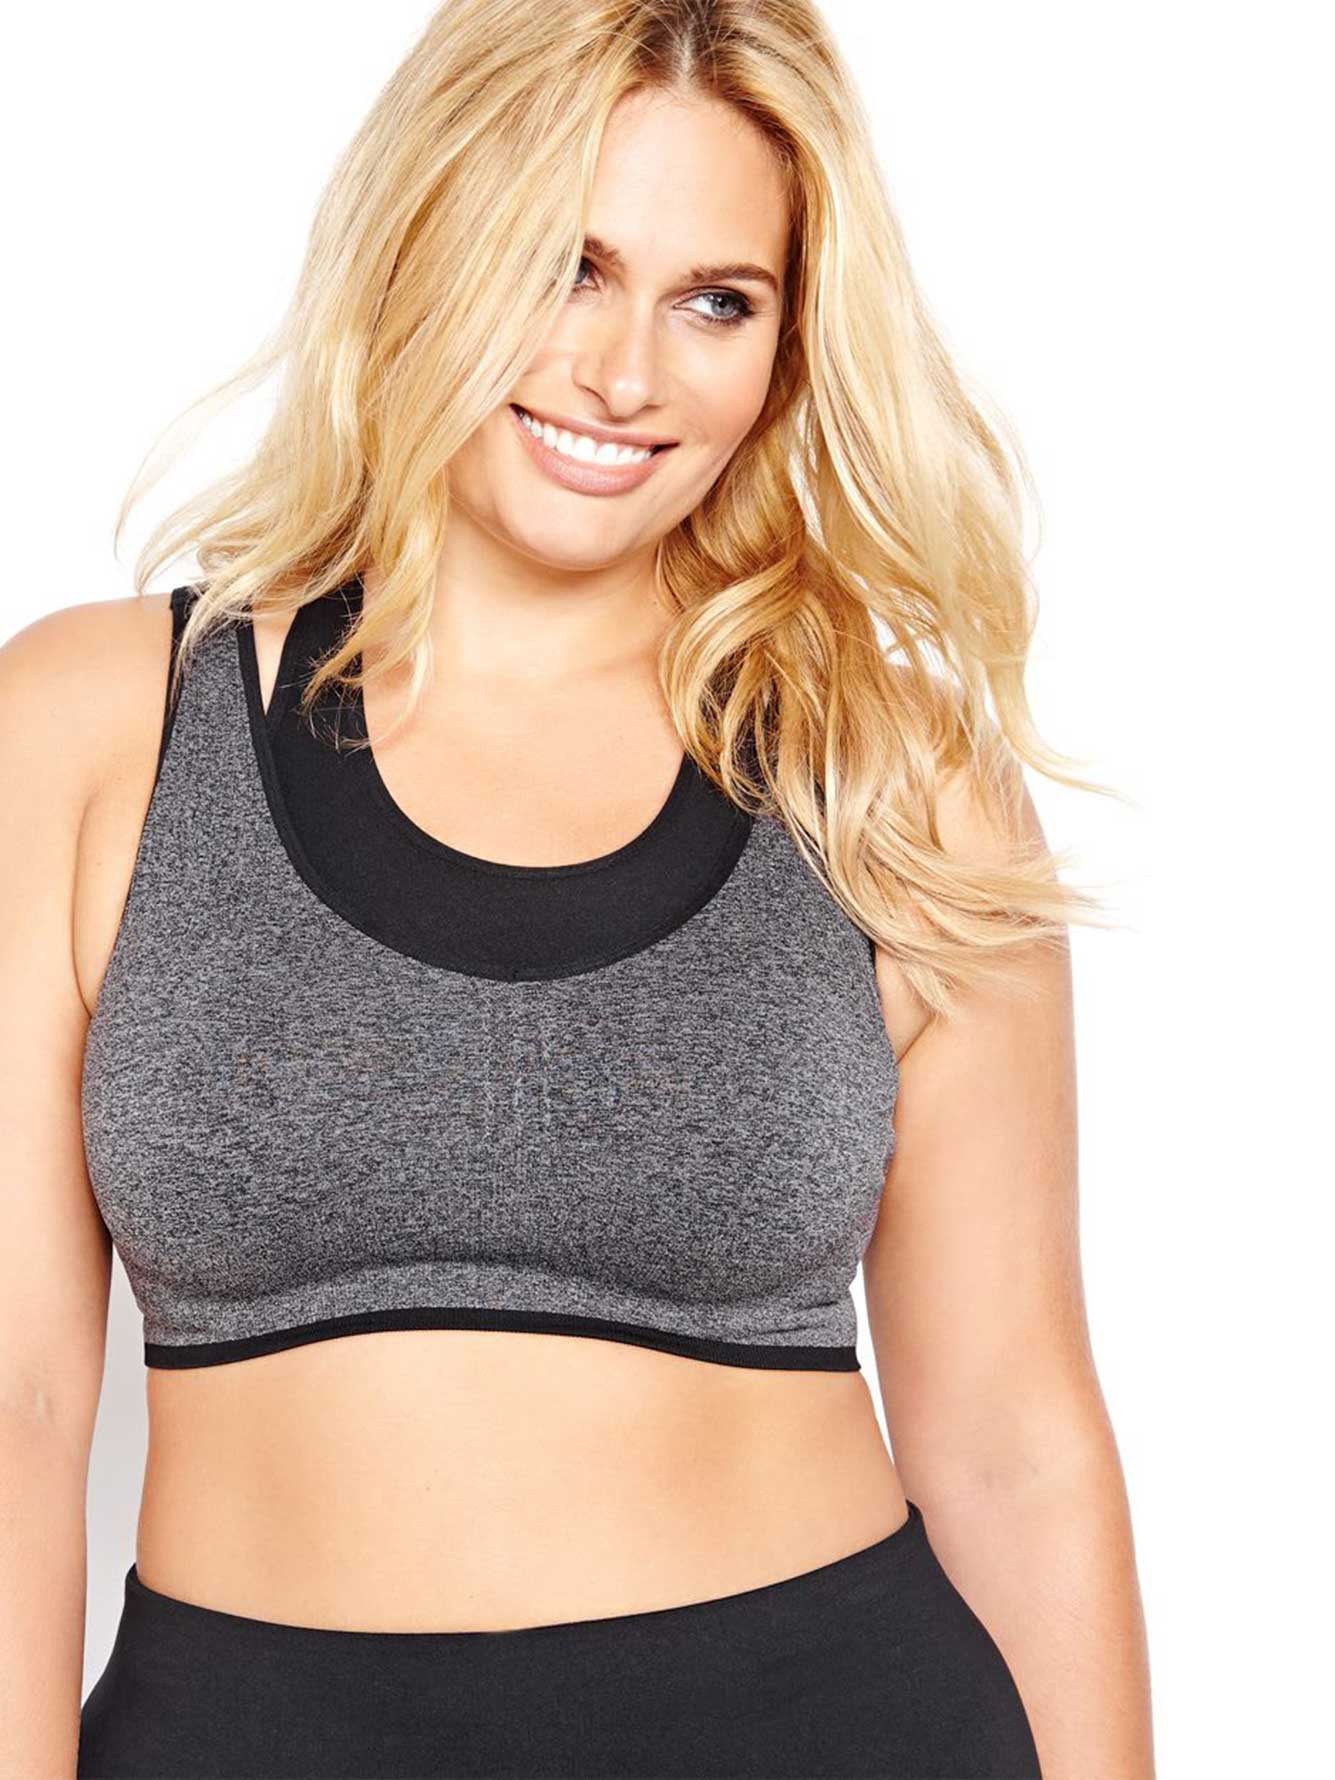 bd343ecb66 Nola Seamless Sports Bra